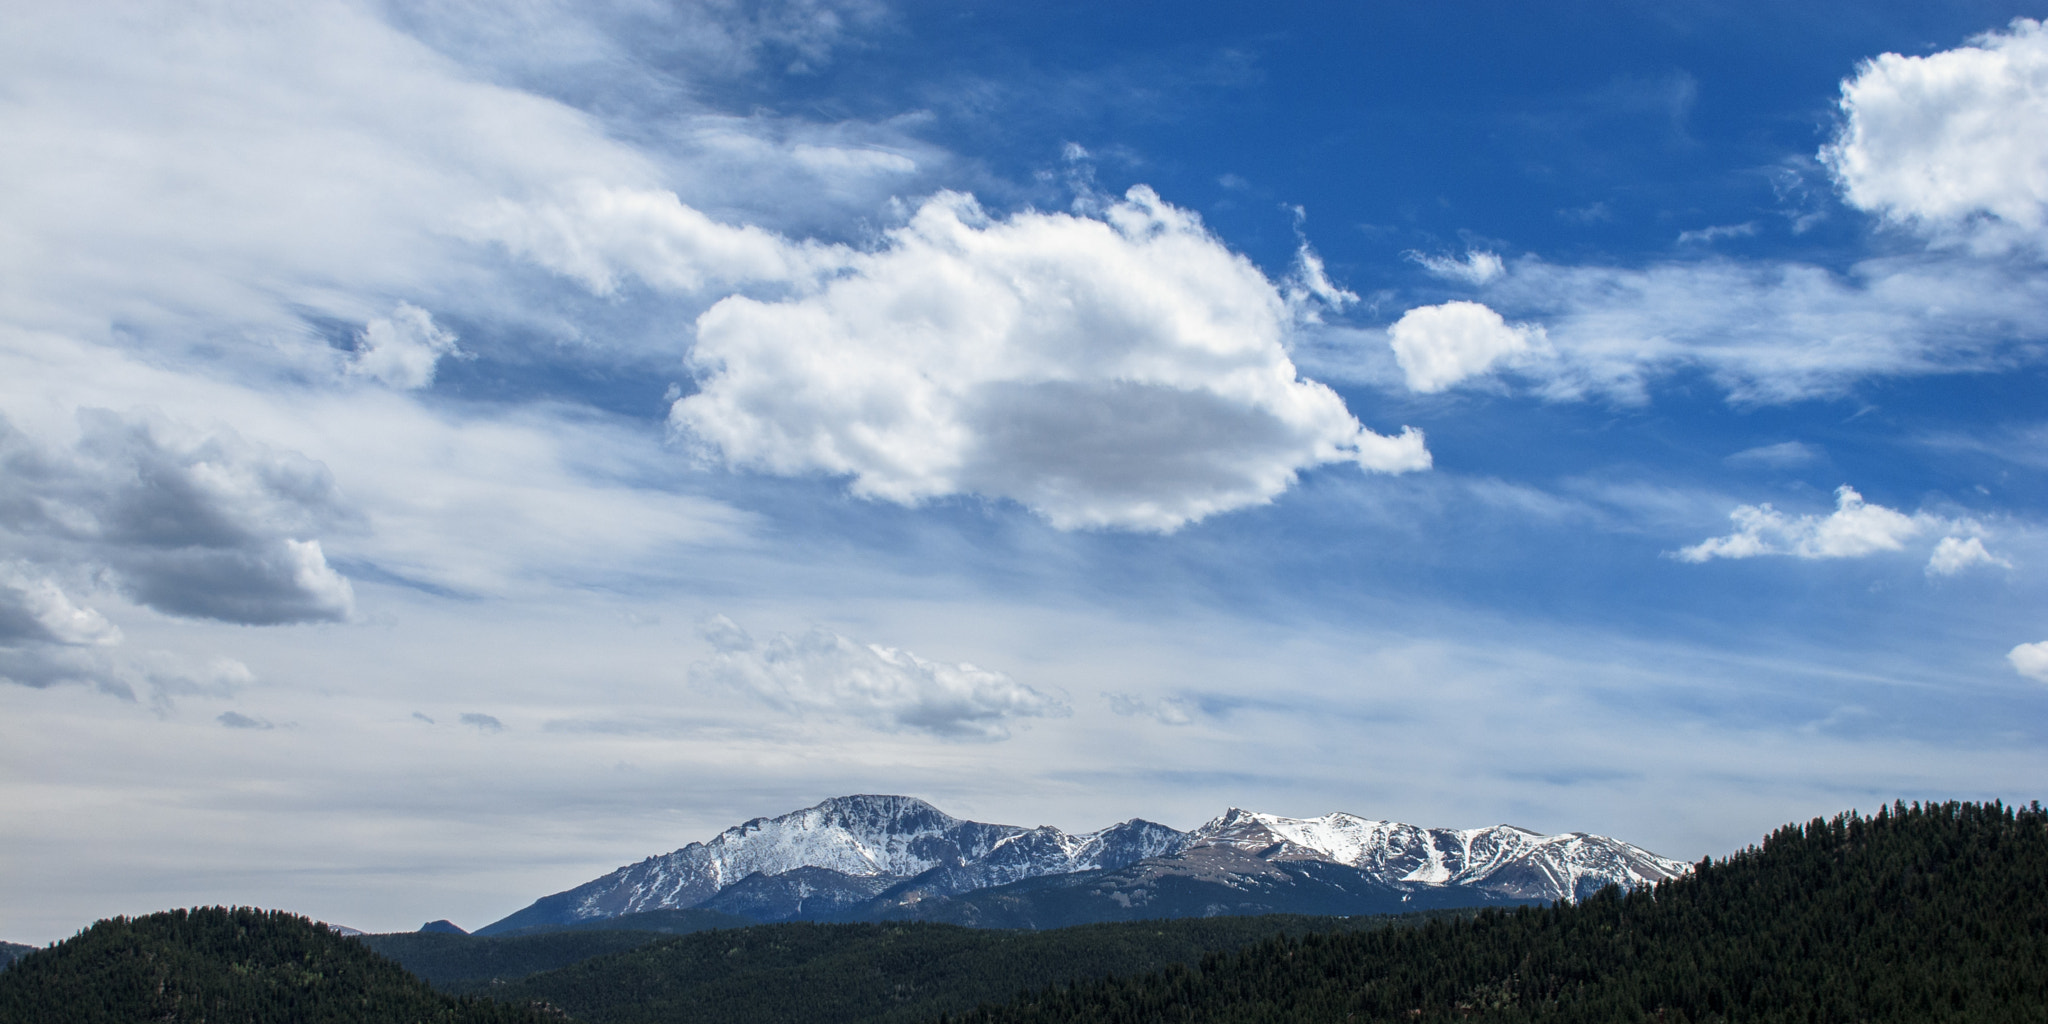 Photograph Pikes Peak by Bill McBride on 500px